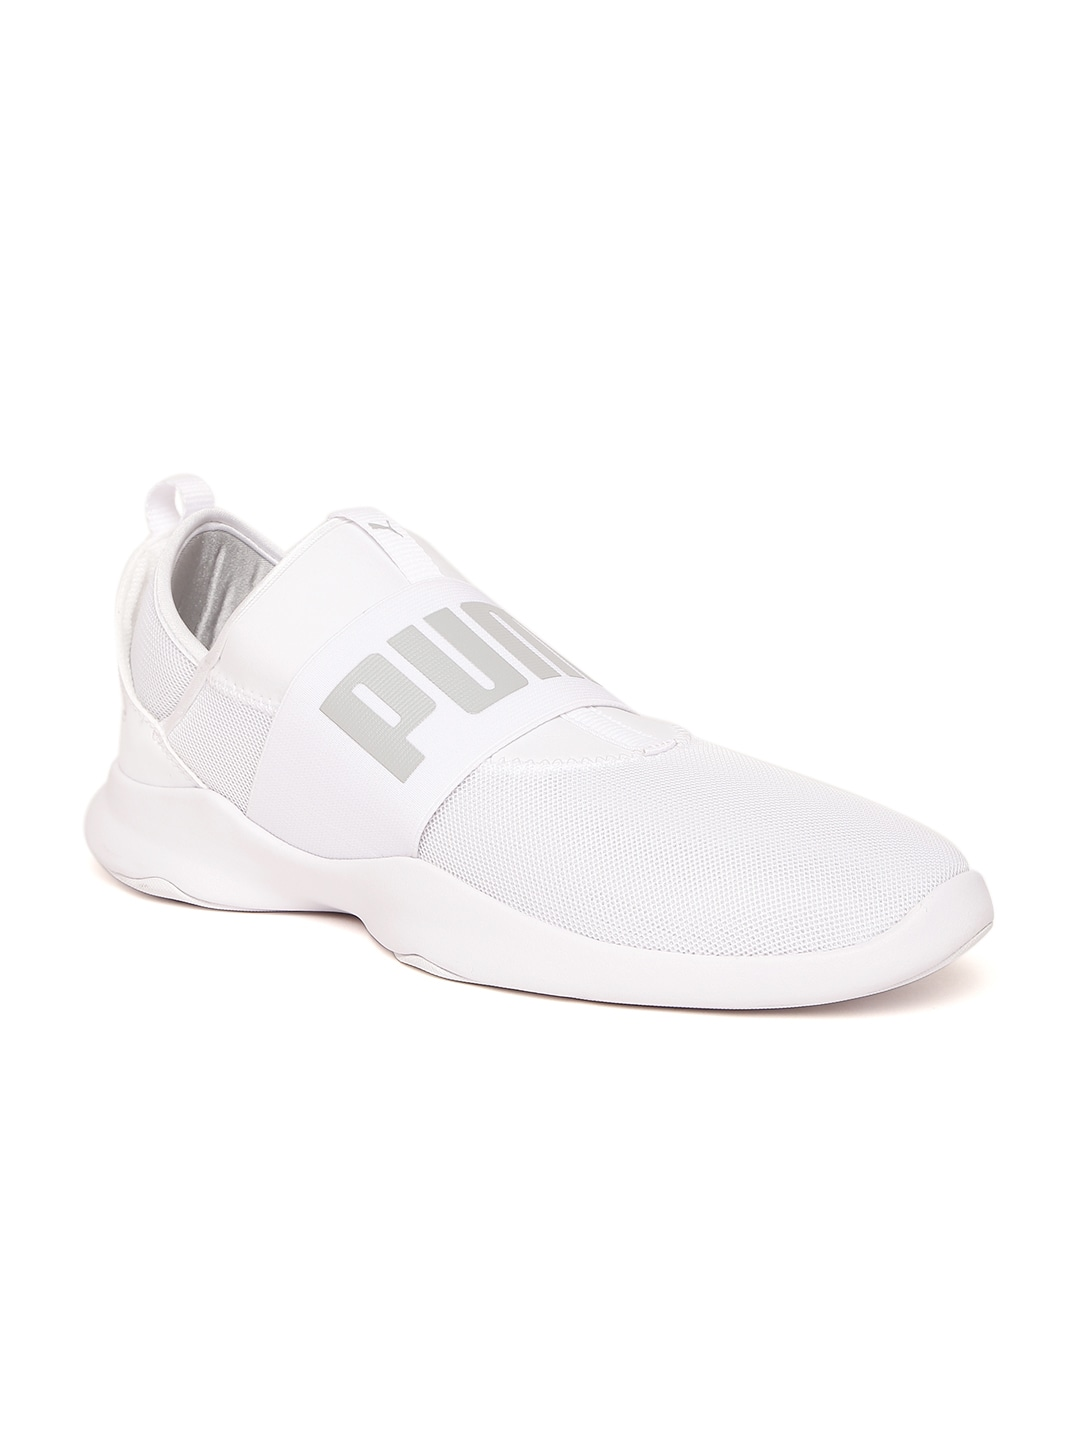 6e2853bfddc3 Puma Slip On Shoes - Buy Puma Slip On Shoes online in India